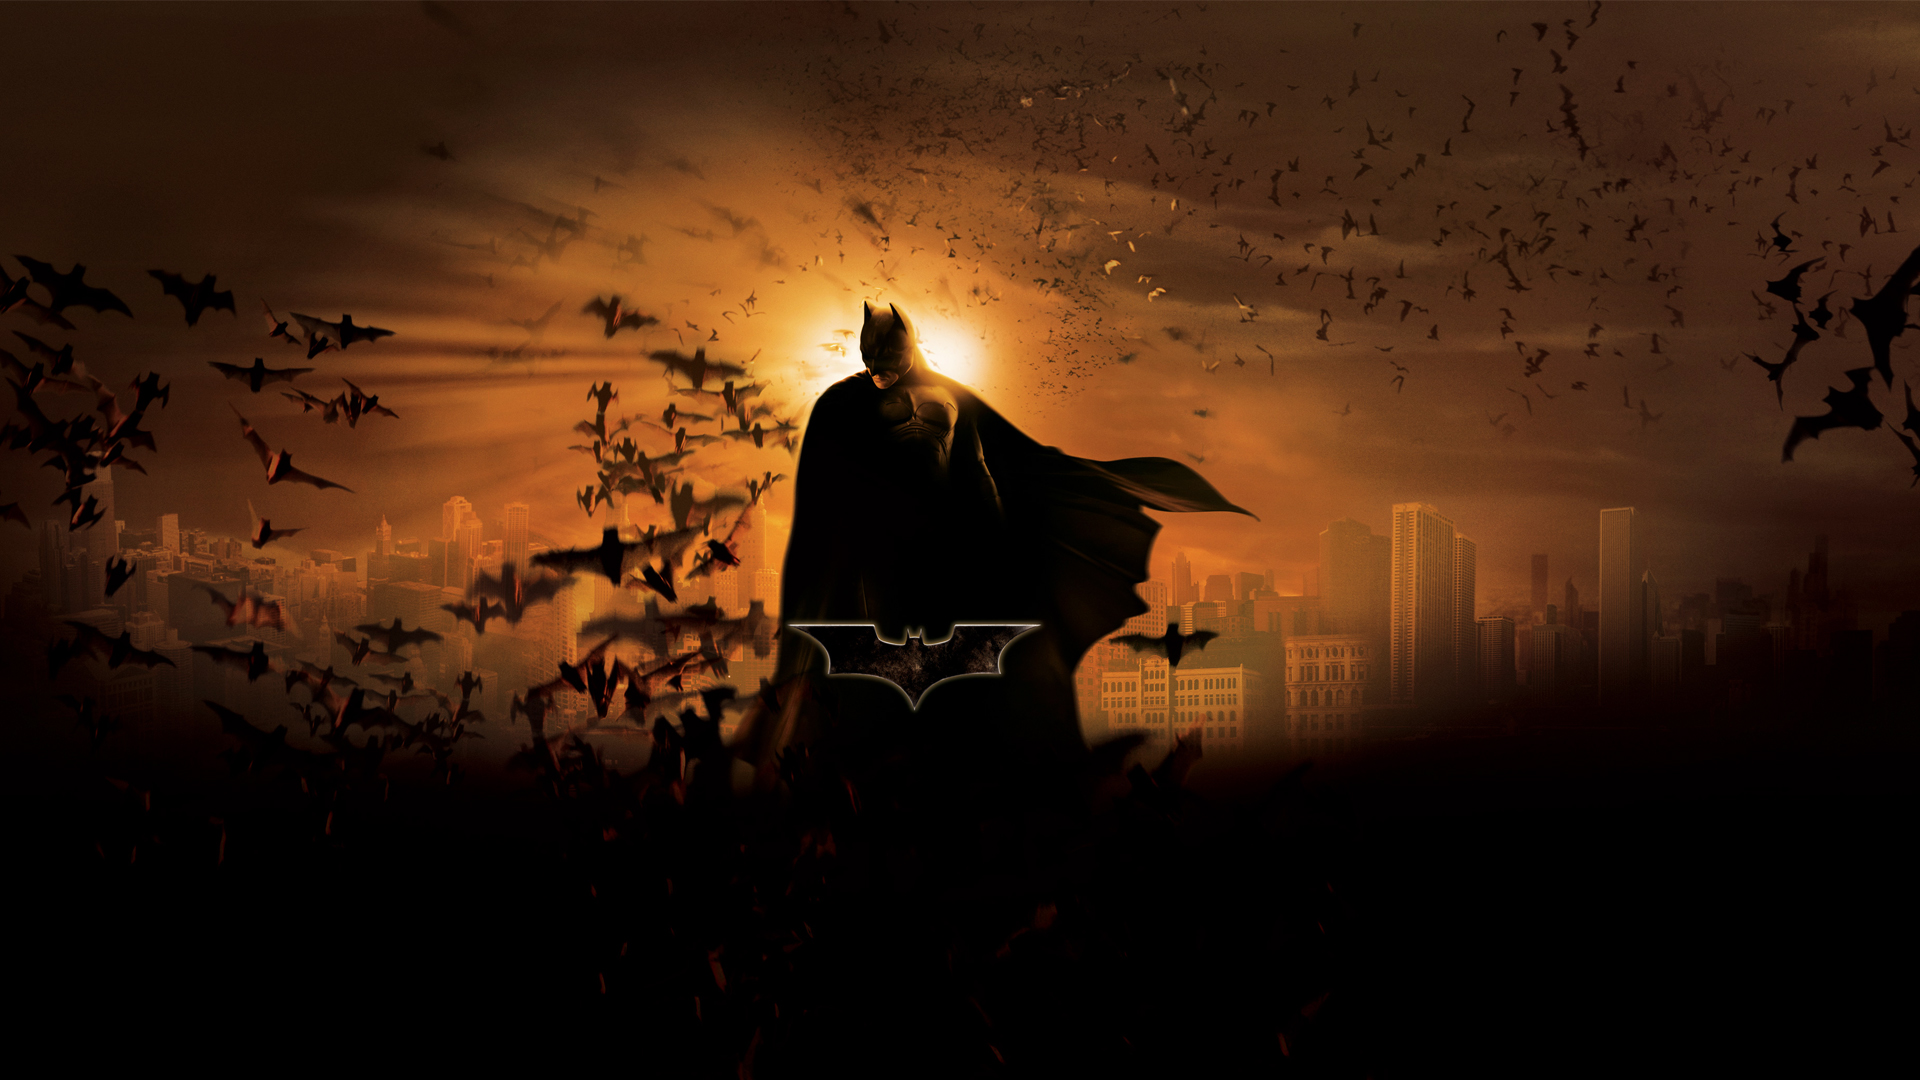 batman hd wallpaper 1920x1080 wwwpixsharkcom images